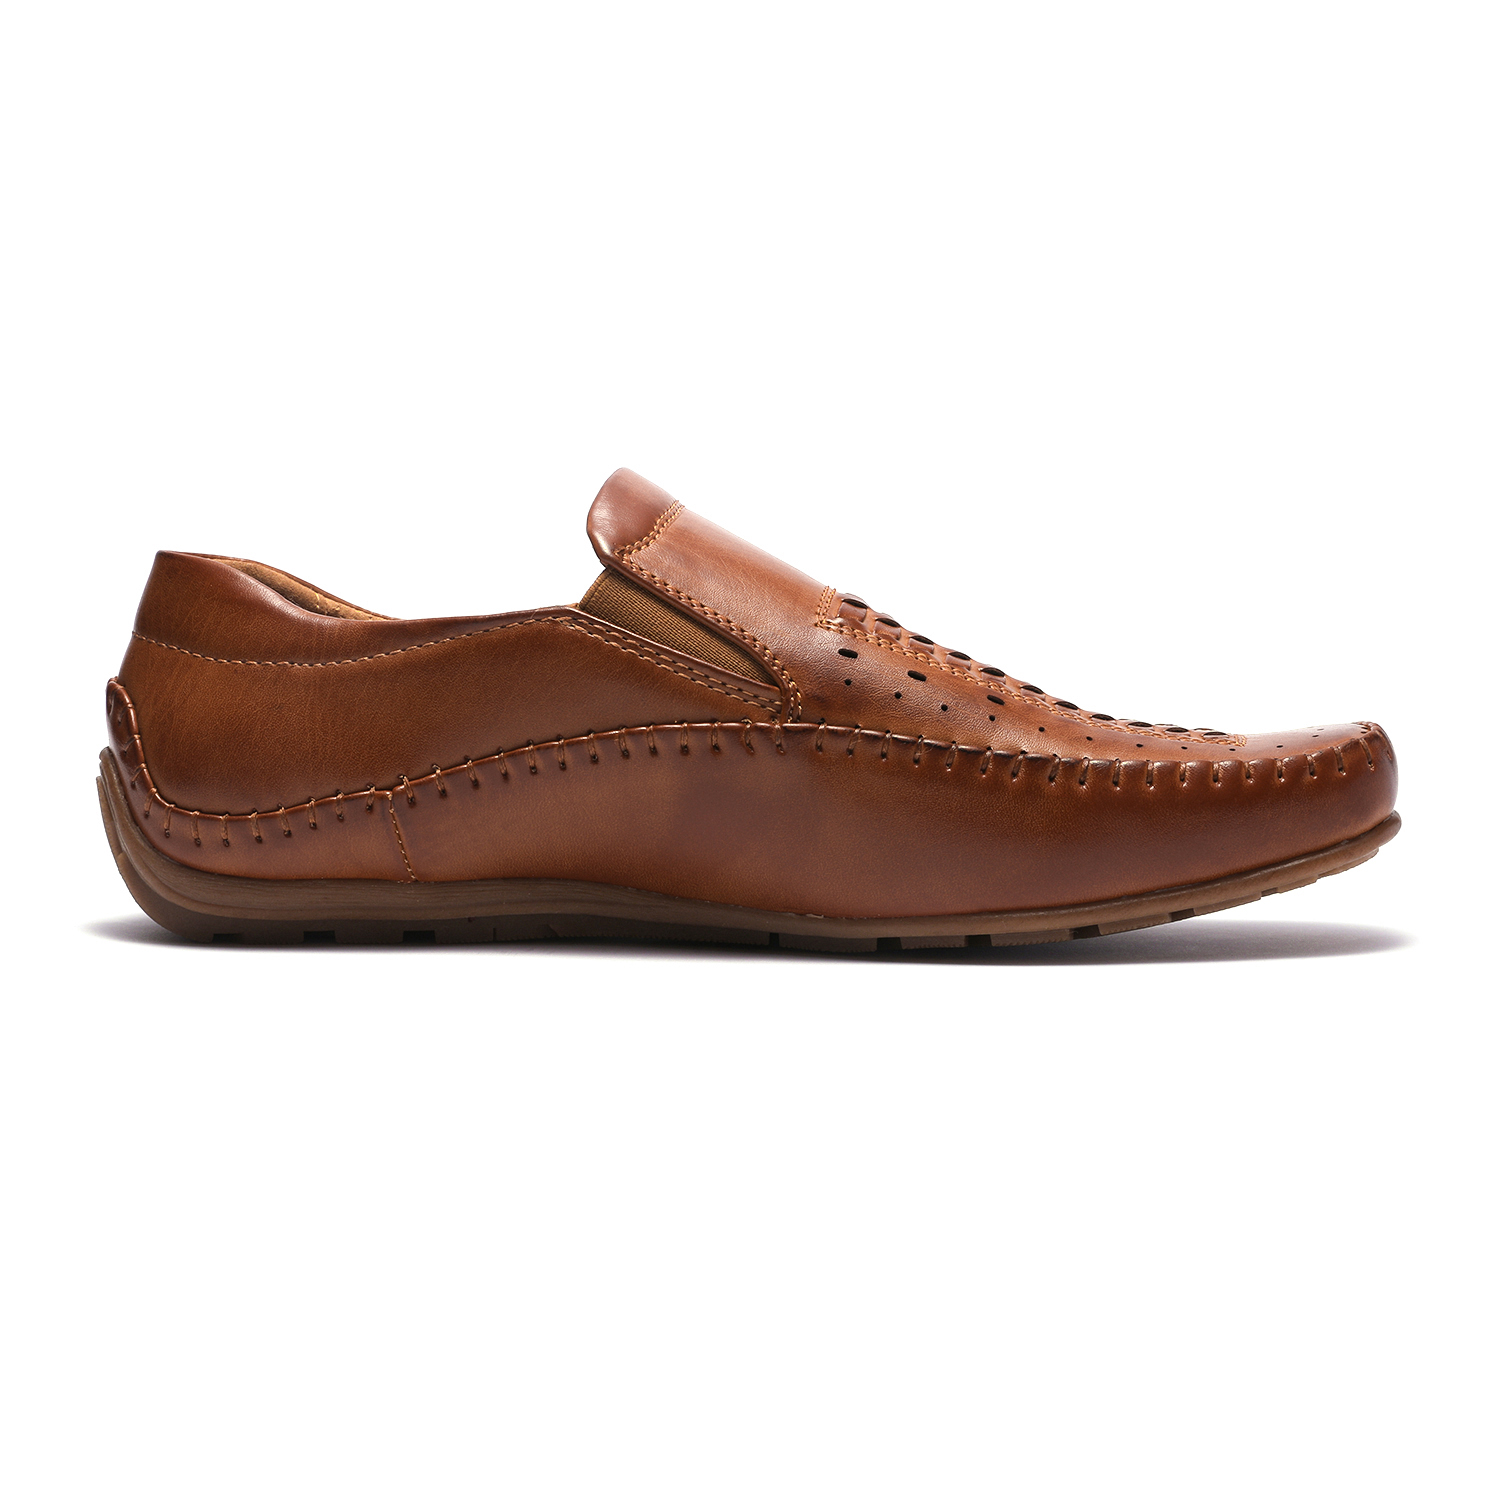 Bruno-Marc-Mens-Penny-Light-Loafers-Moccasins-Driving-Flats-Slip-On-Casual-Shoes thumbnail 22